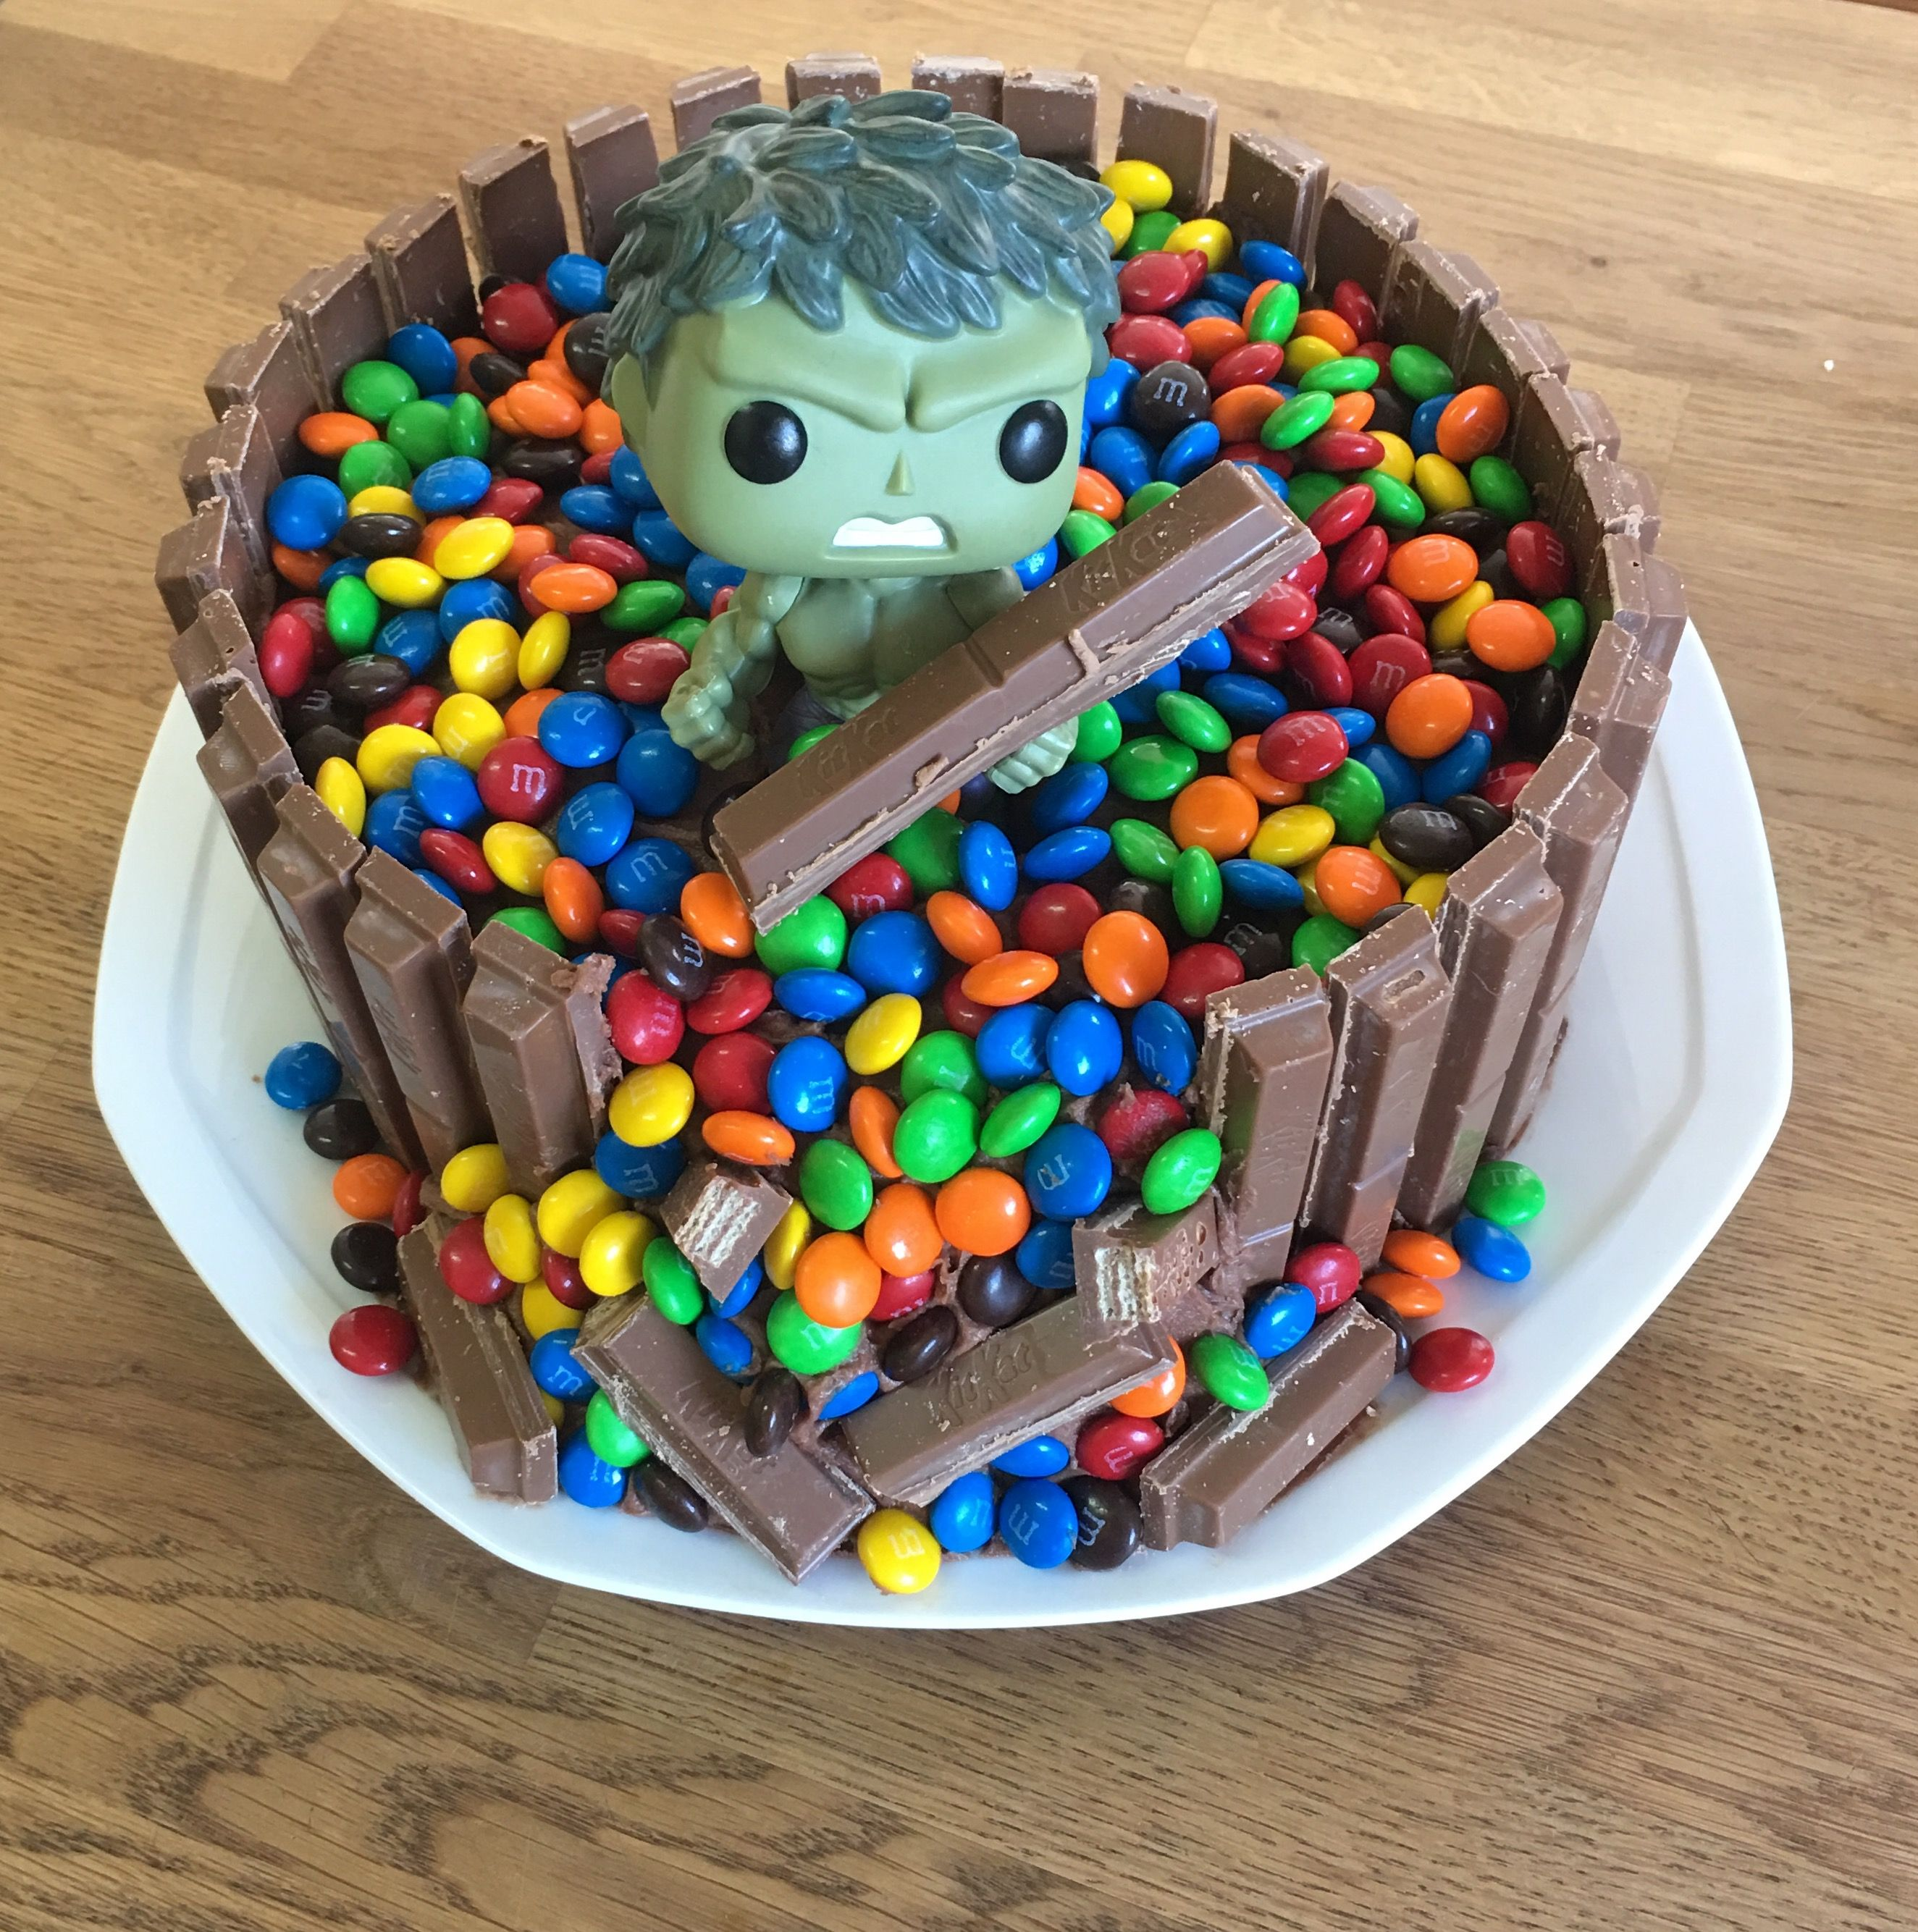 Strange Our Version Of A Hulk Birthday Cake For Our 9 Year Old Boy He Funny Birthday Cards Online Alyptdamsfinfo